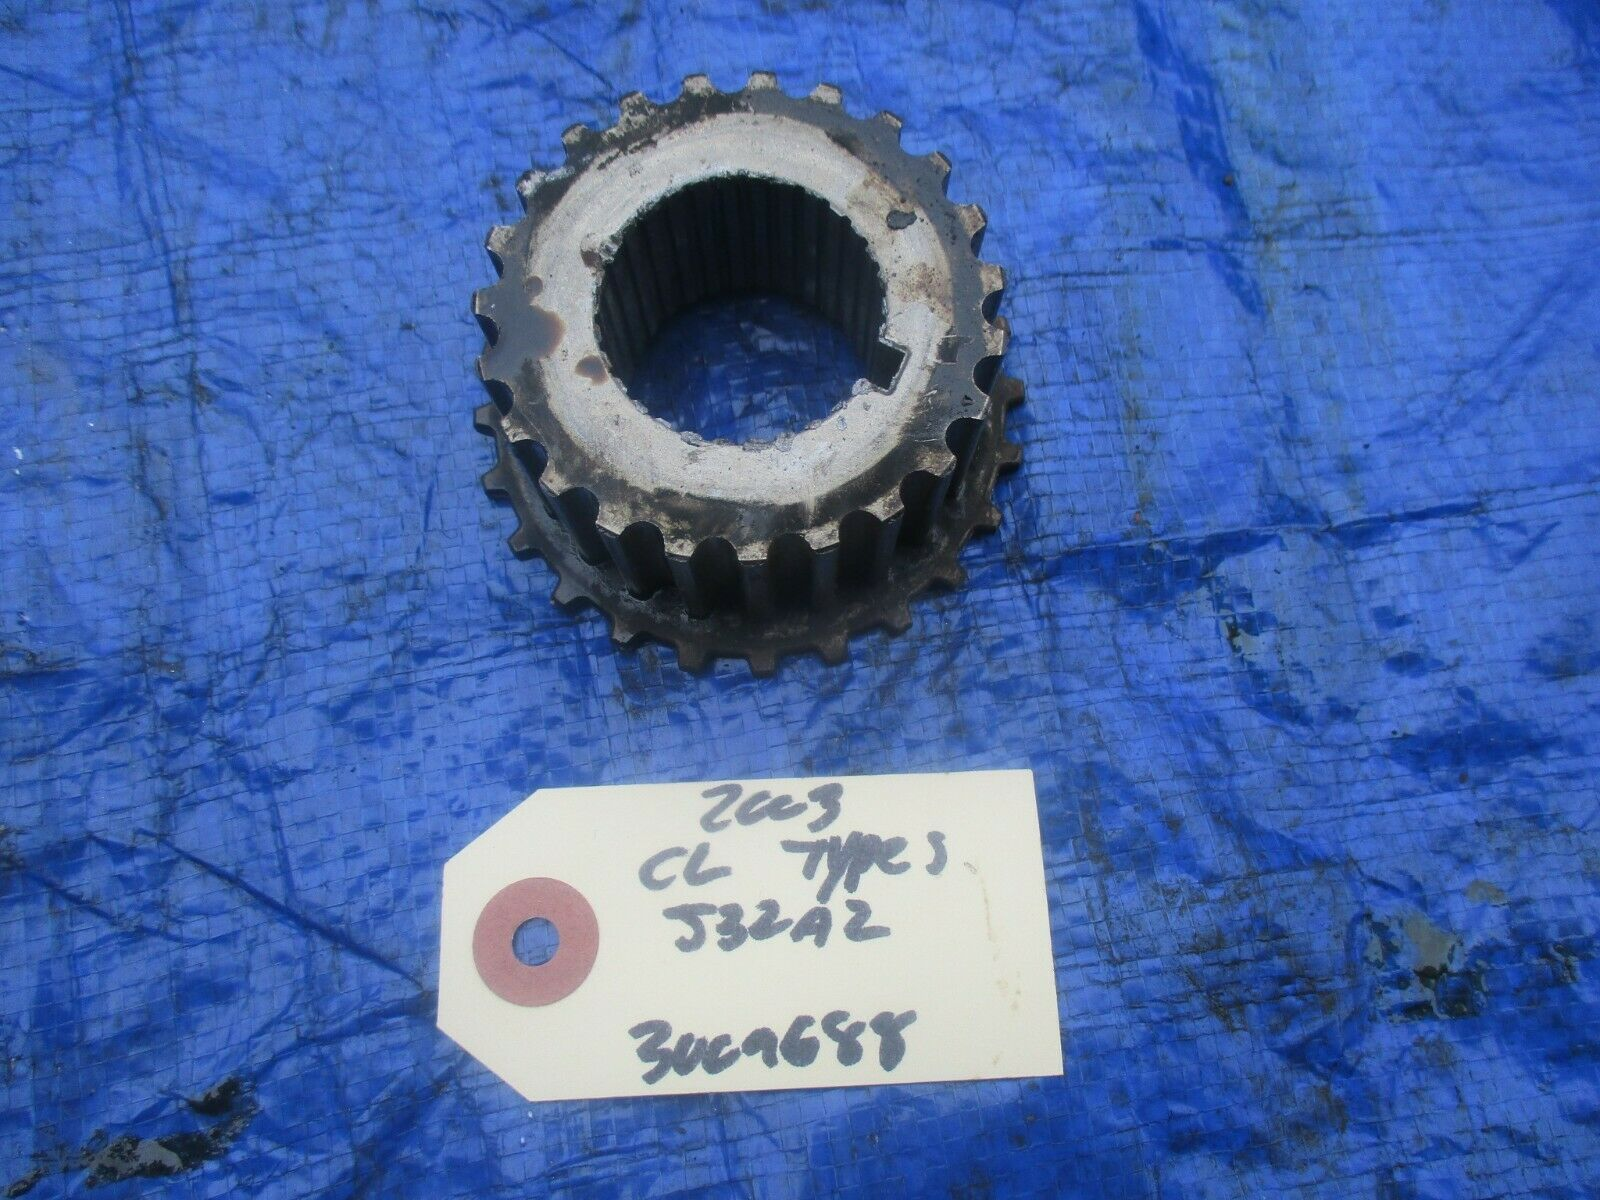 Primary image for 01-03 Acura CL Type S J32A2 timing belt gear OEM 3009688 J32 PGE crankshaft